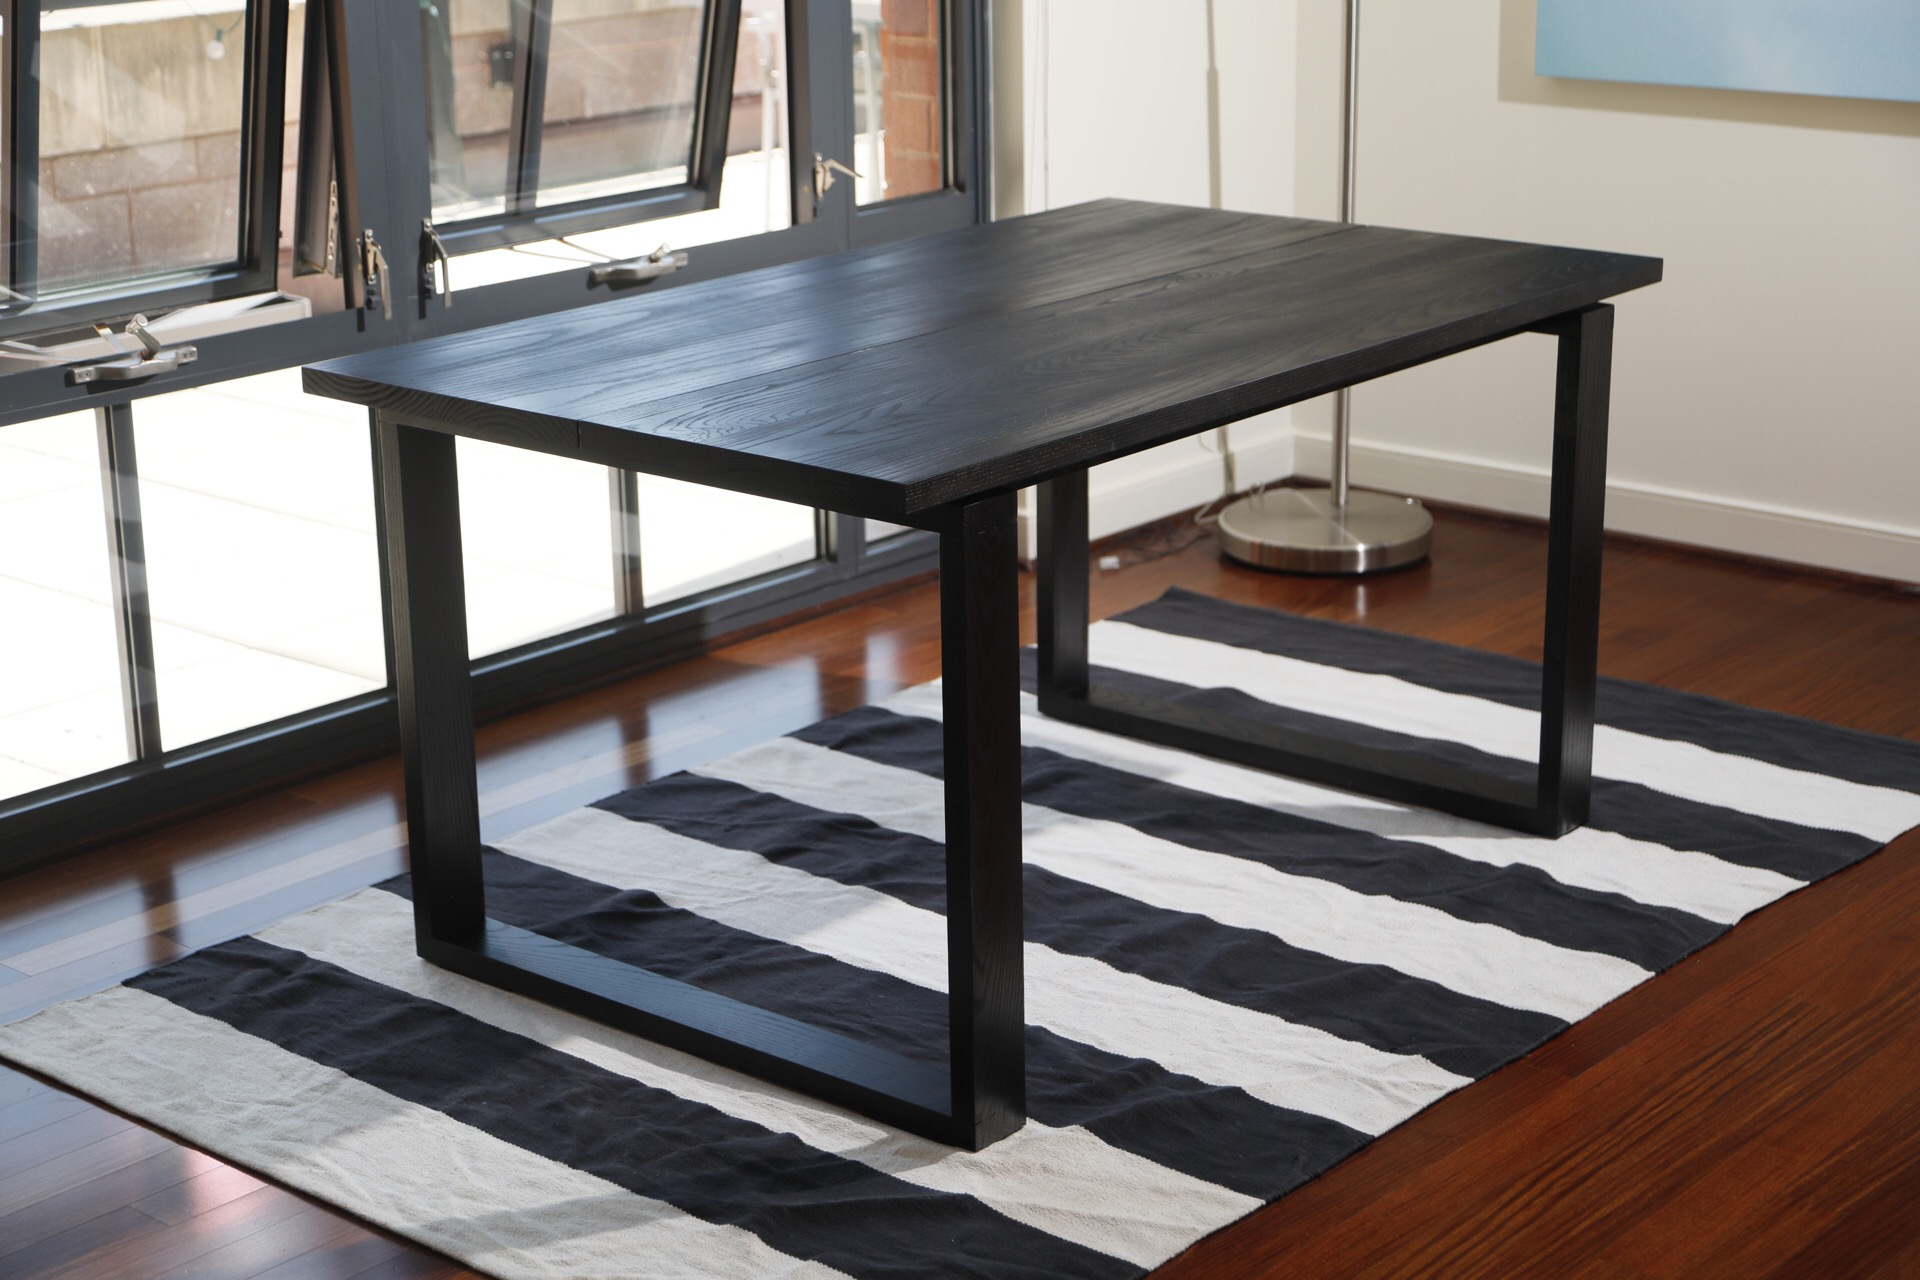 "Black Ash Dining Table | Ash | 36"" x 60"" x 30"" Photo by Michael Shaffer"